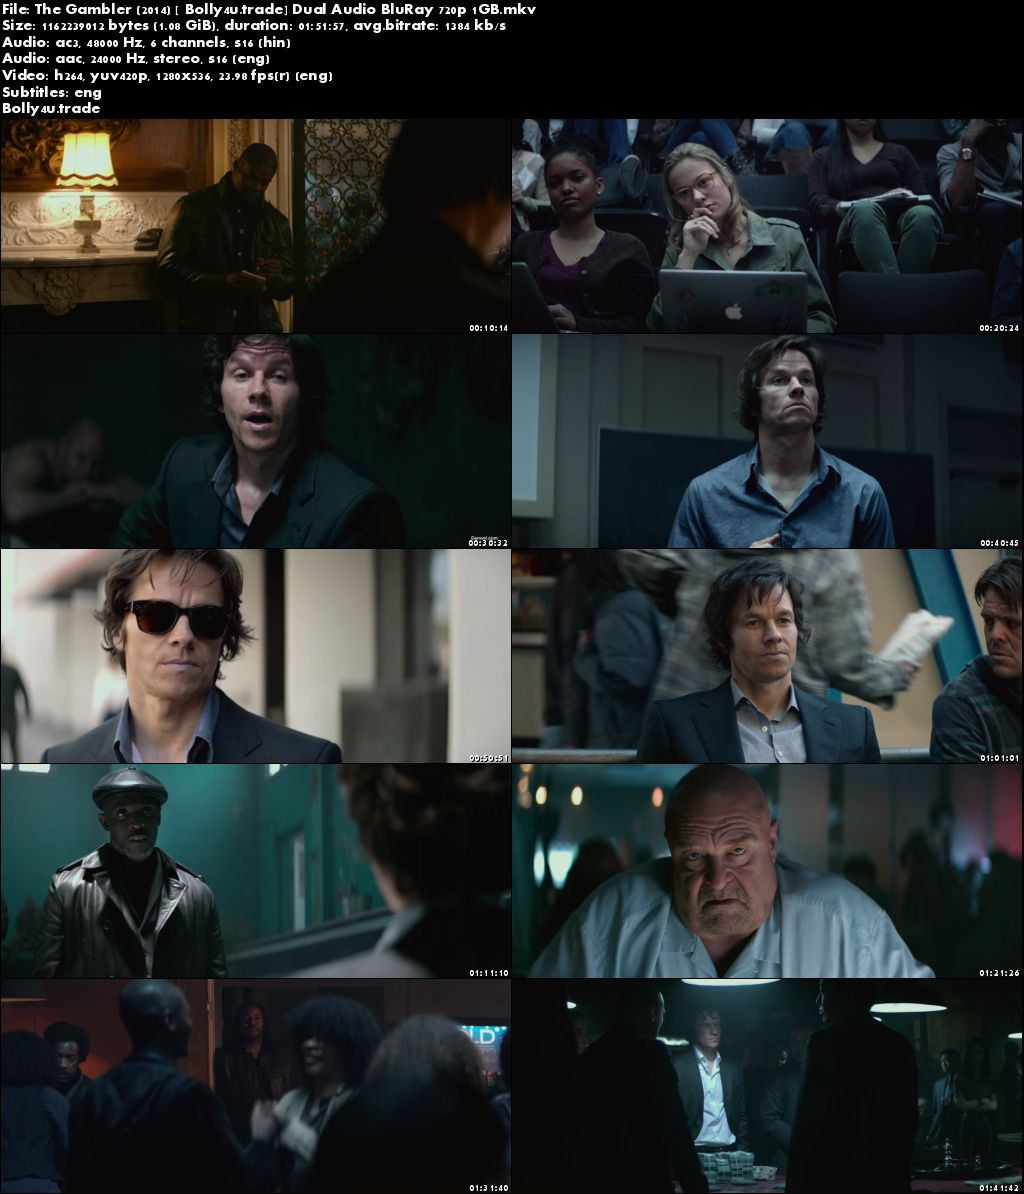 The Gambler 2014 BluRay 1GB Hindi Dubbed Dual Audio 720p ESub Download